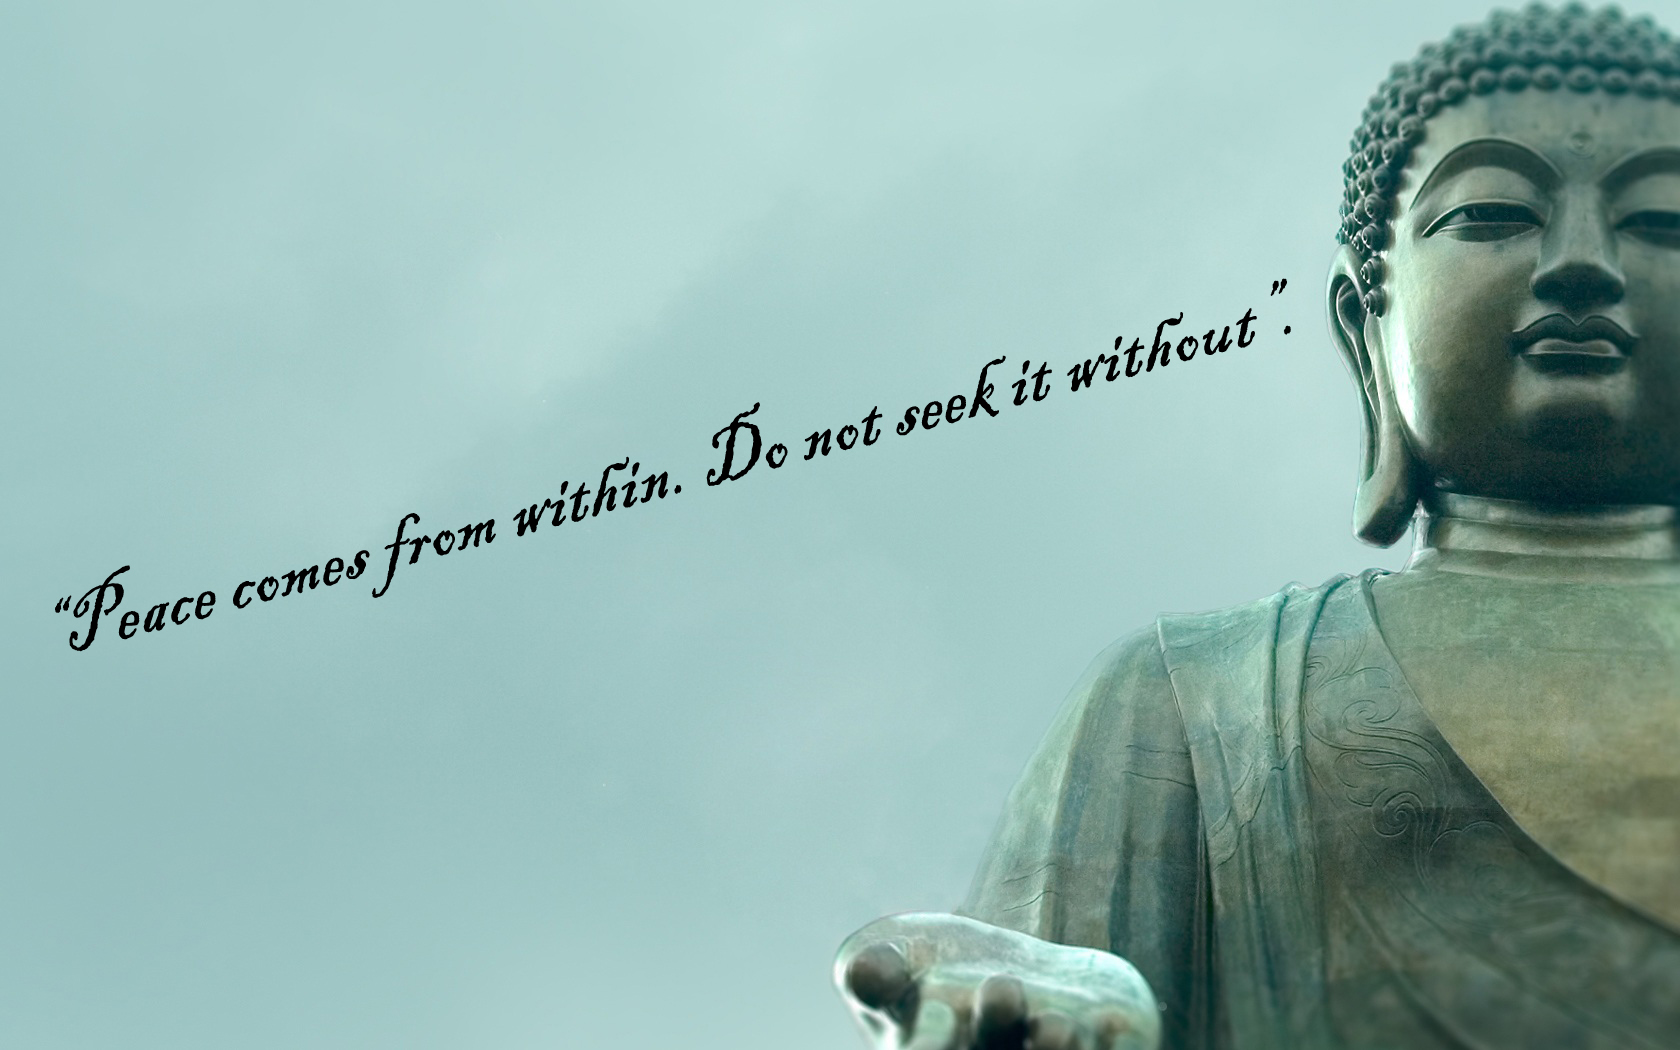 Buddha Quotes Wallpapers QuotesGram 1680x1050